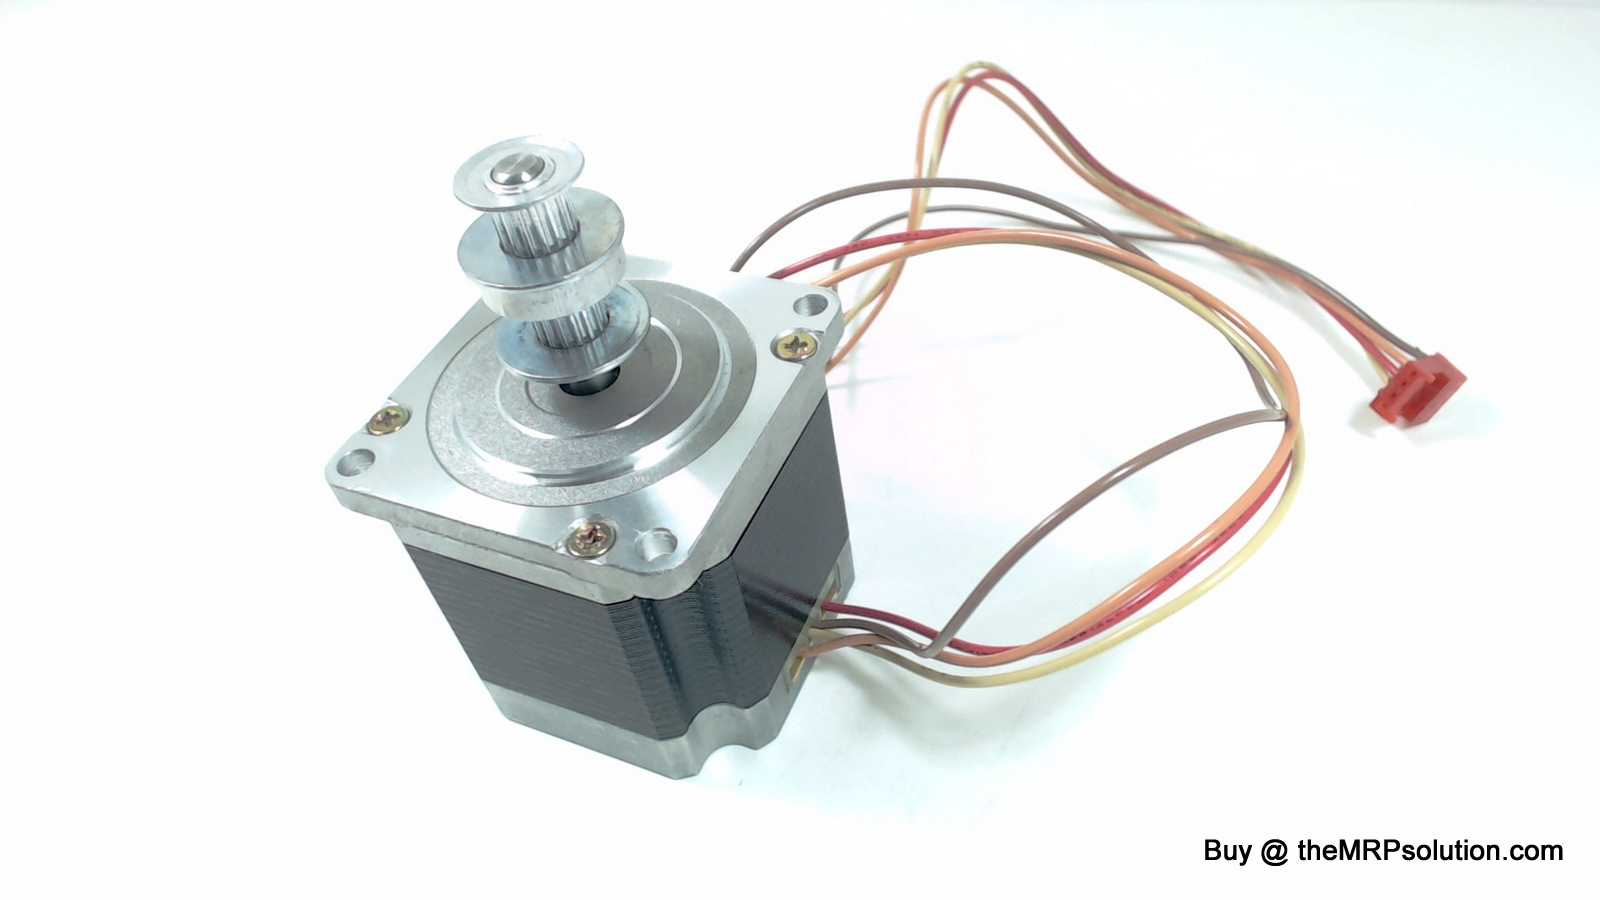 ZEBRA 43420 STEPPER MOTOR, 600DPI New